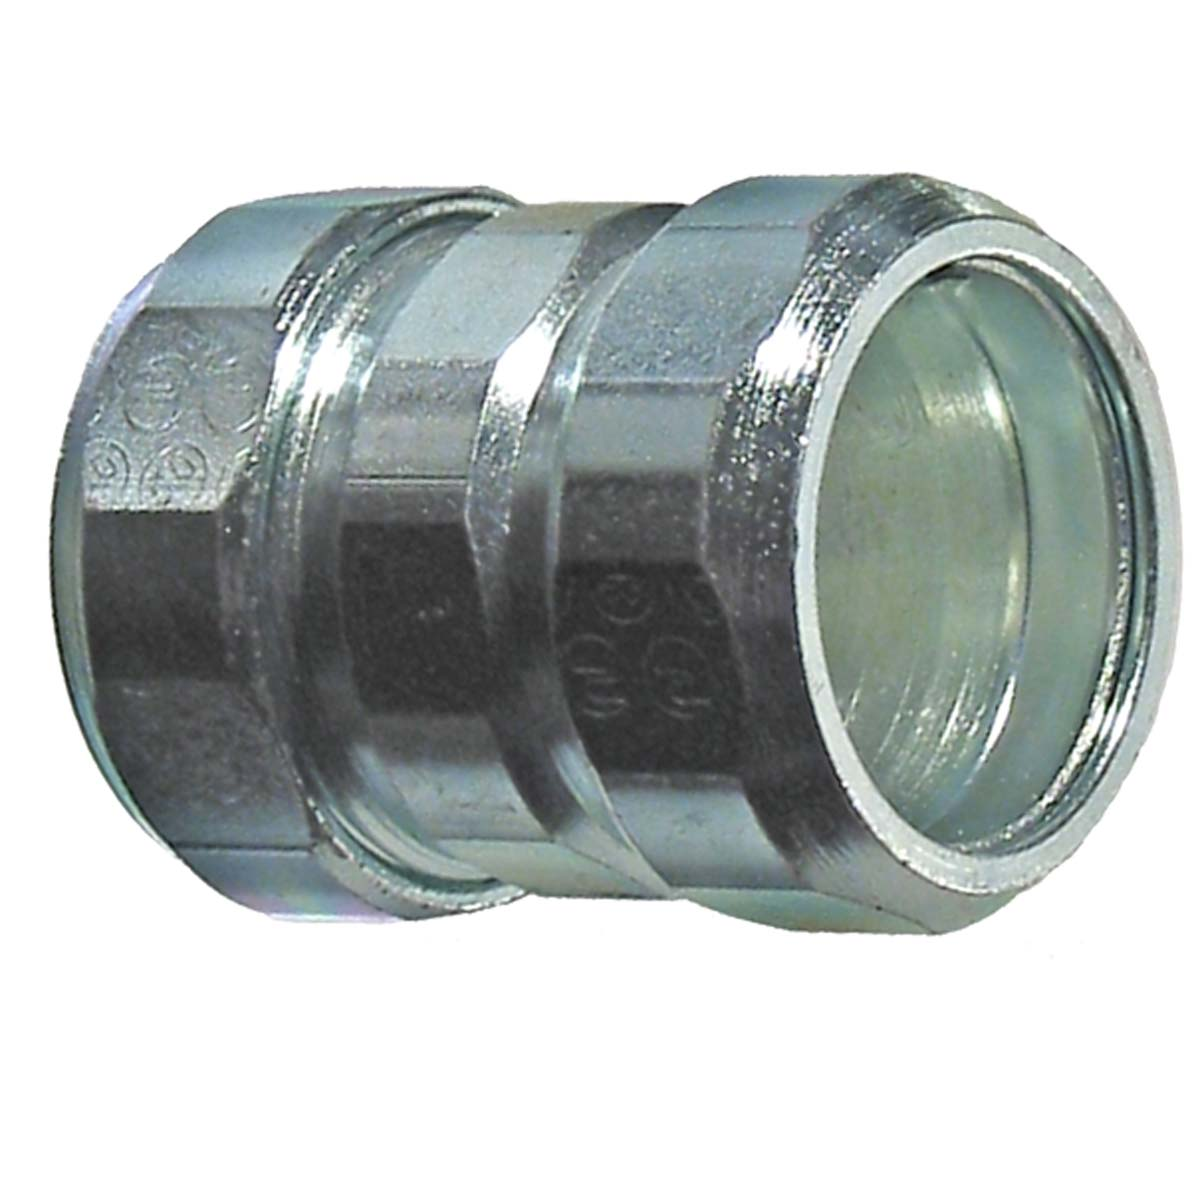 Threadless compression coupling kimball midwest